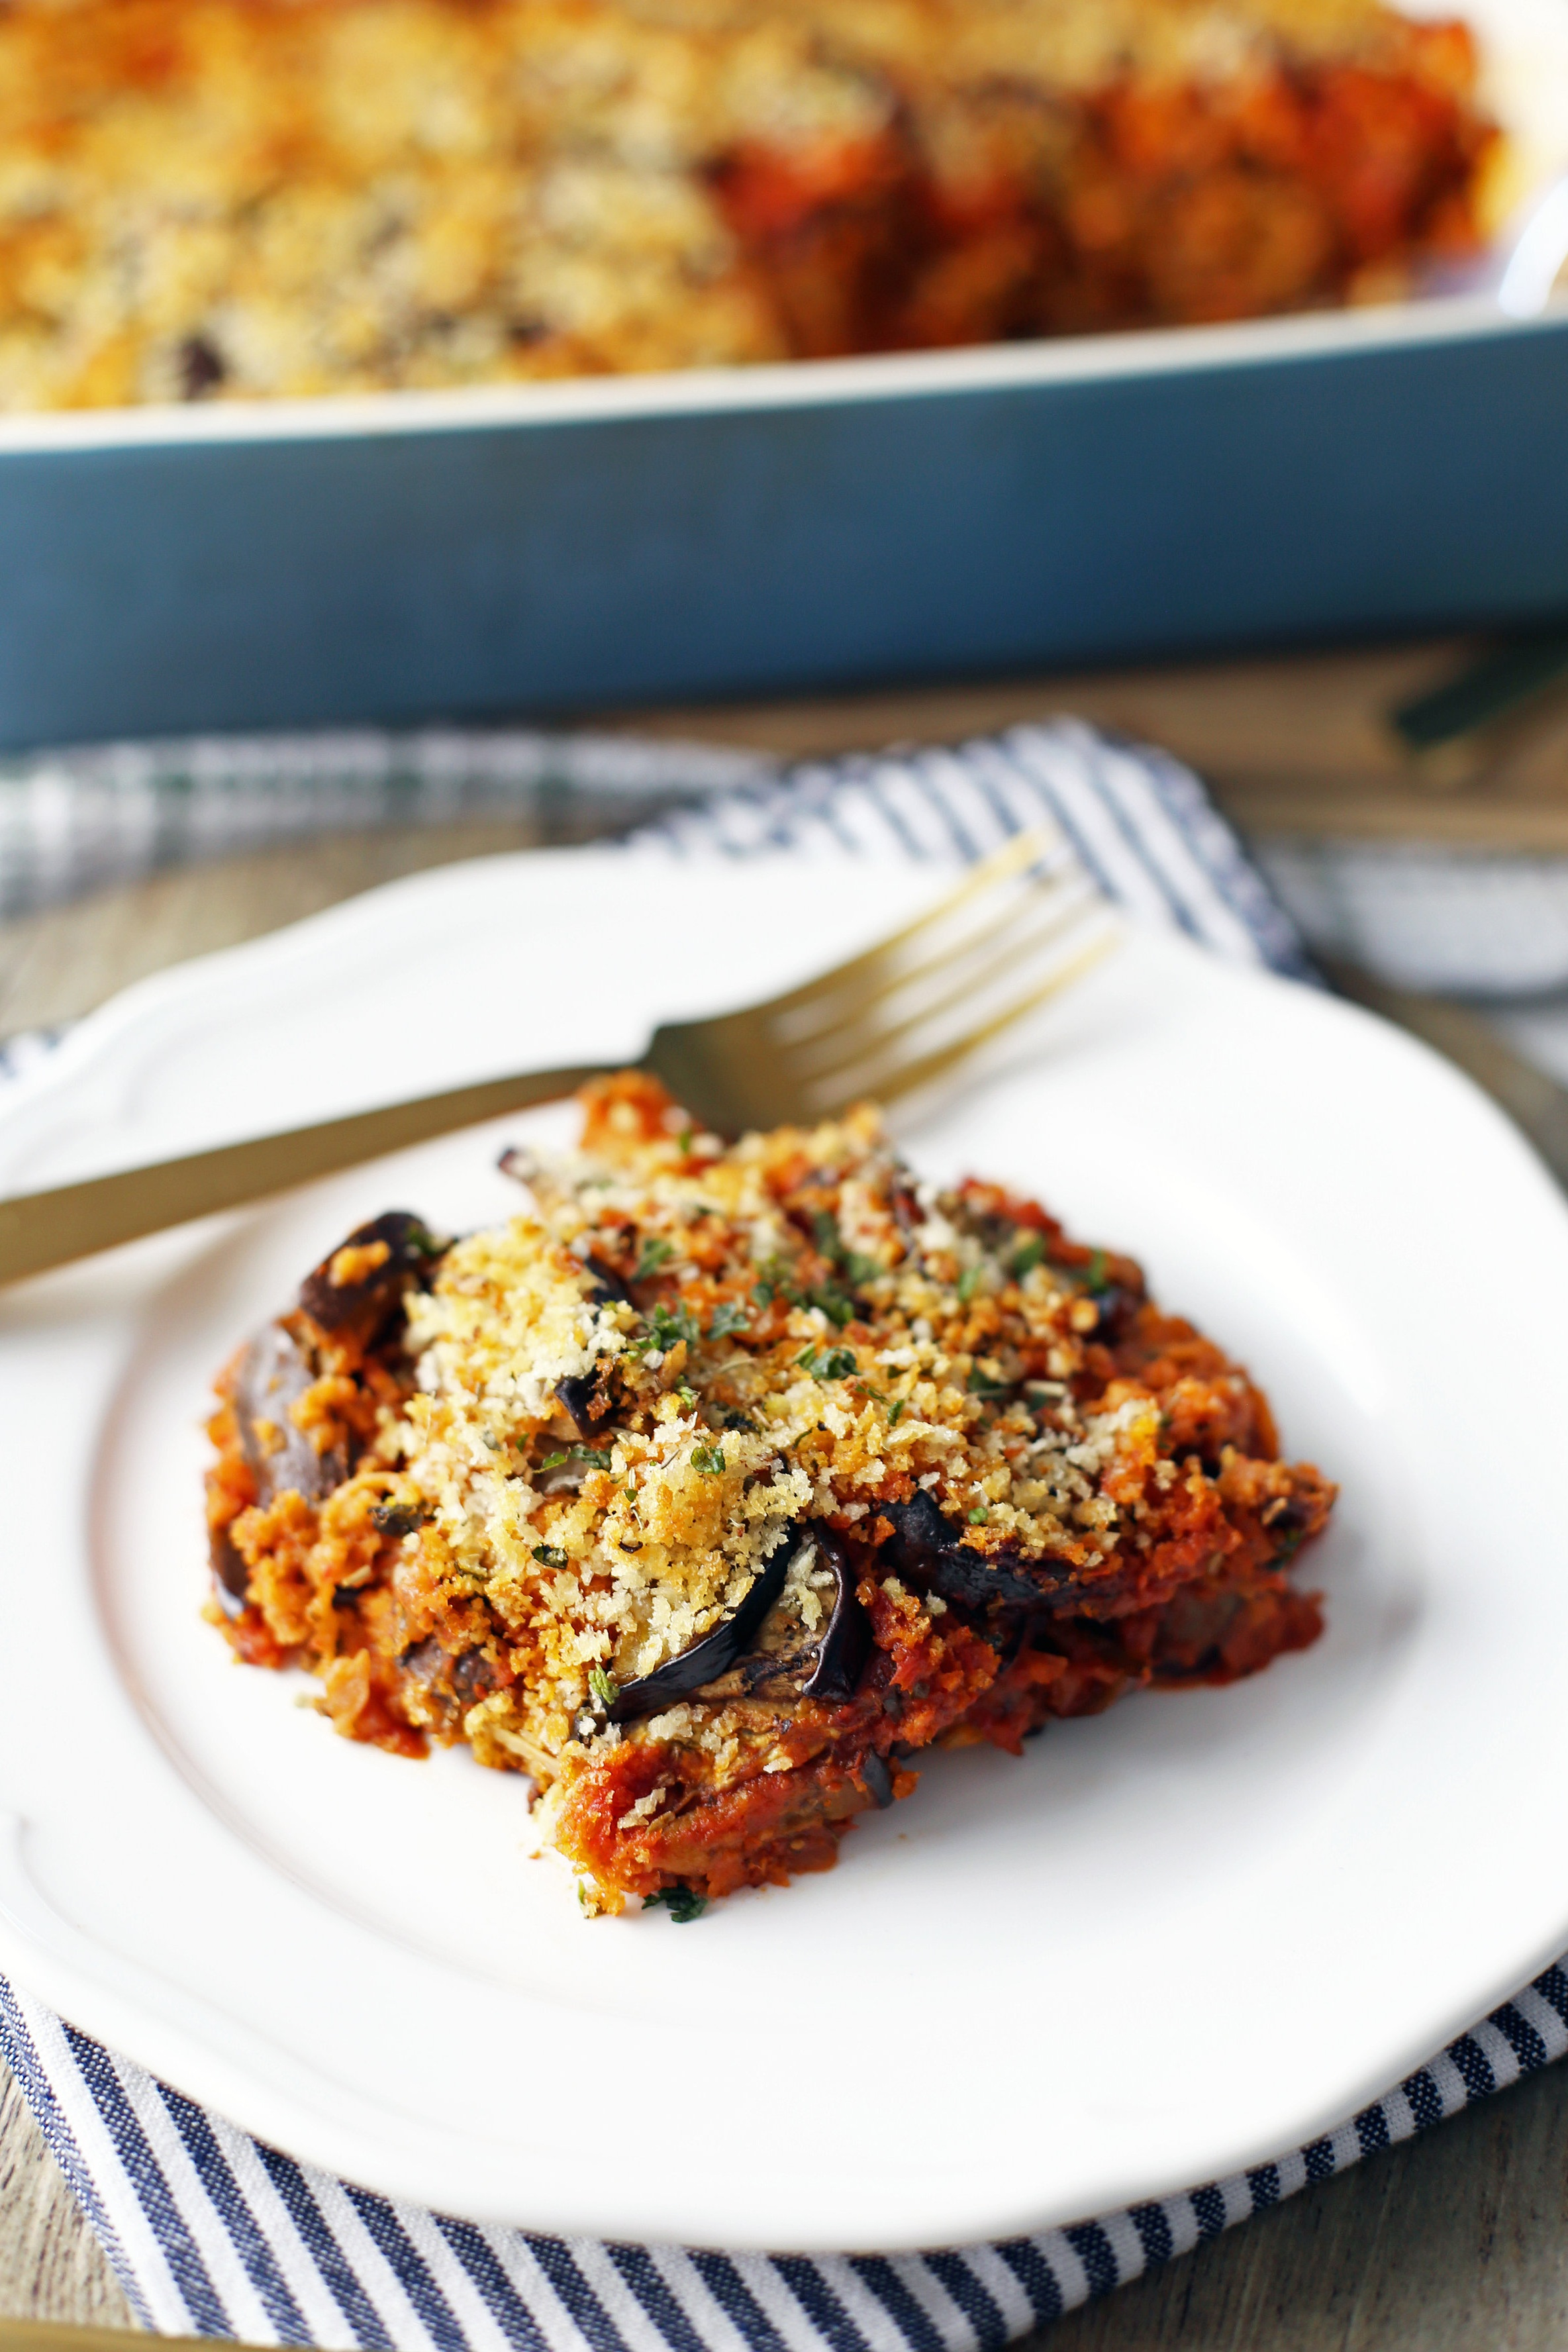 A piece of cheesy layered Baked Eggplant Parmesan on a white plate with a gold fork.